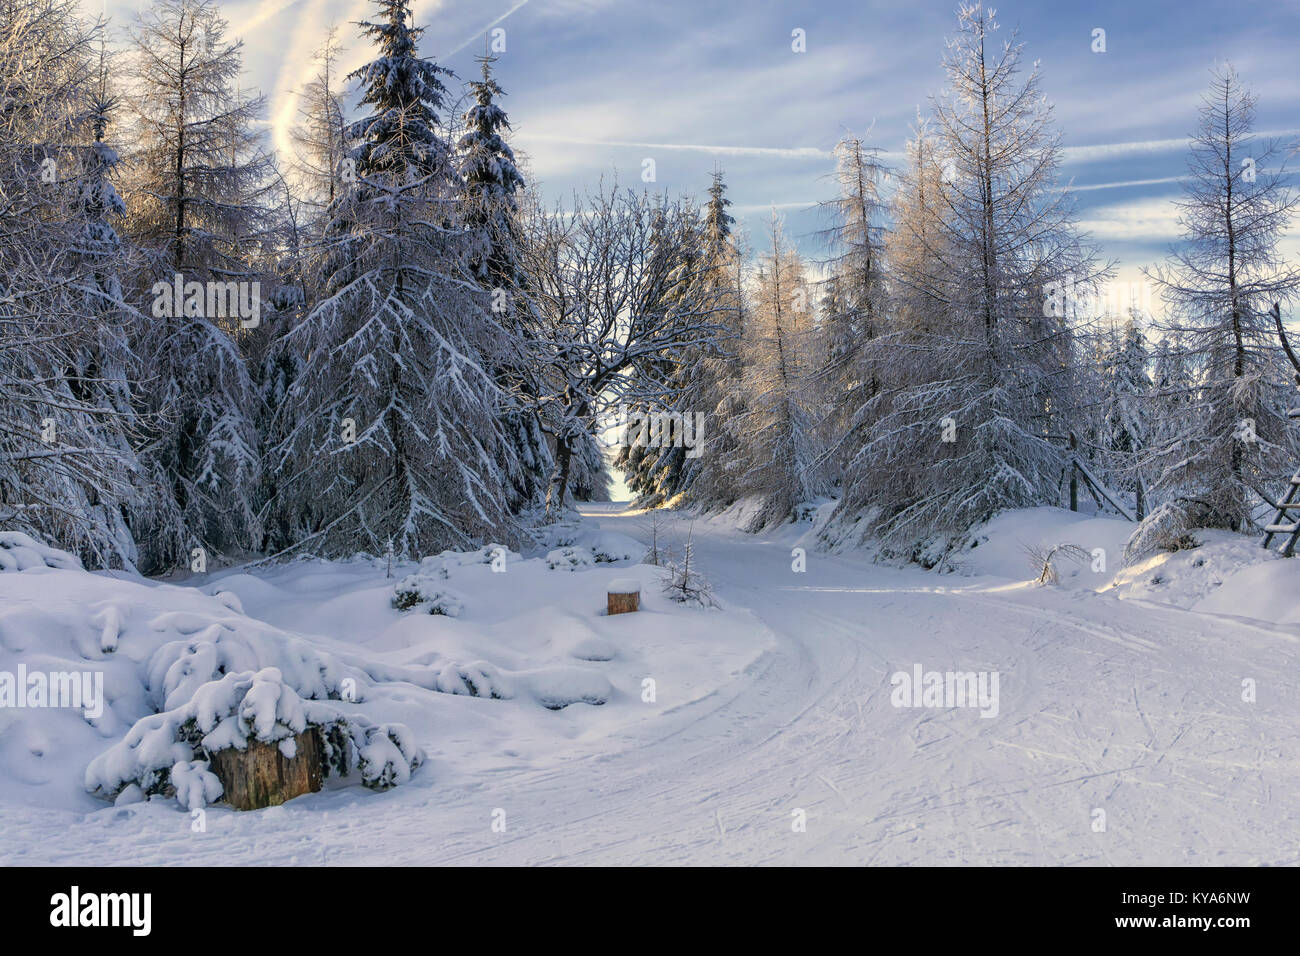 Road in mountains at winter sunny day. Trees covered with hoarfrost illuminated by the sun. Groomed ski trails for - Stock Image